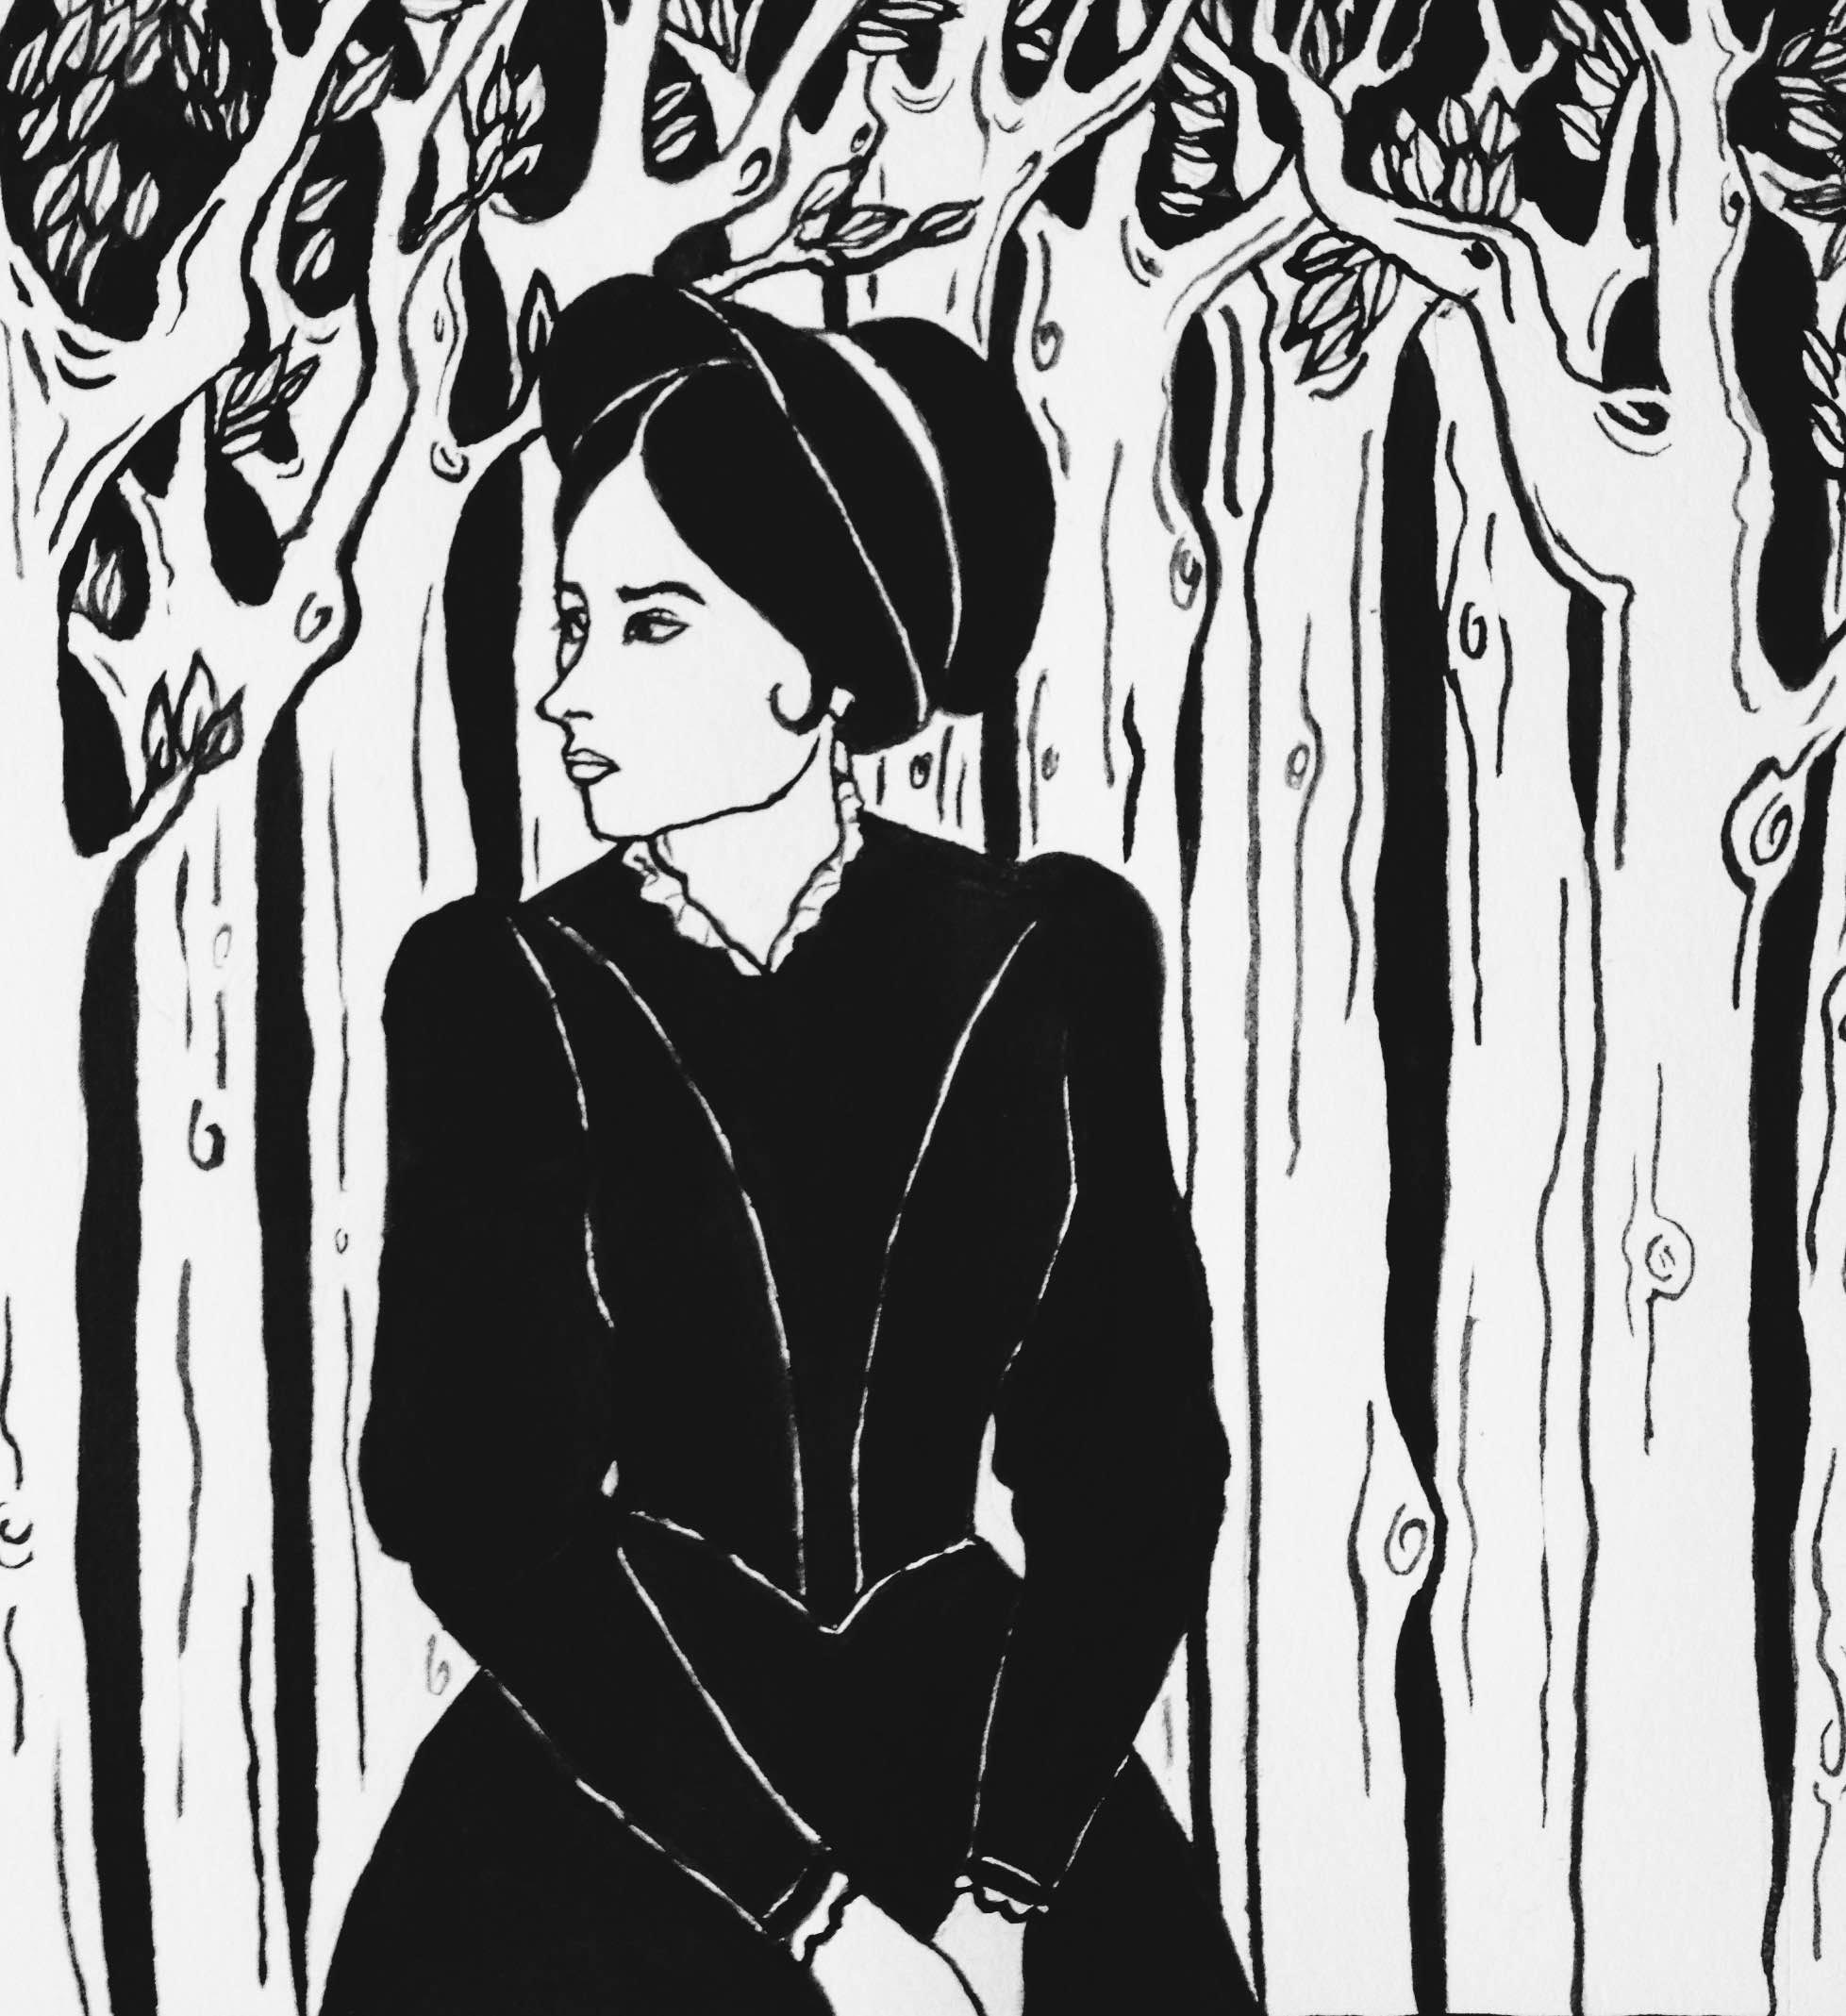 portrayal of helen burns jane eyre Portrayal of helen burns from jane eyre by charlotte brontë, a victorian novel jane eyre by charlotte brontë, was published in 1847, and is a bildungsroman, following the life of the protagonist jane.